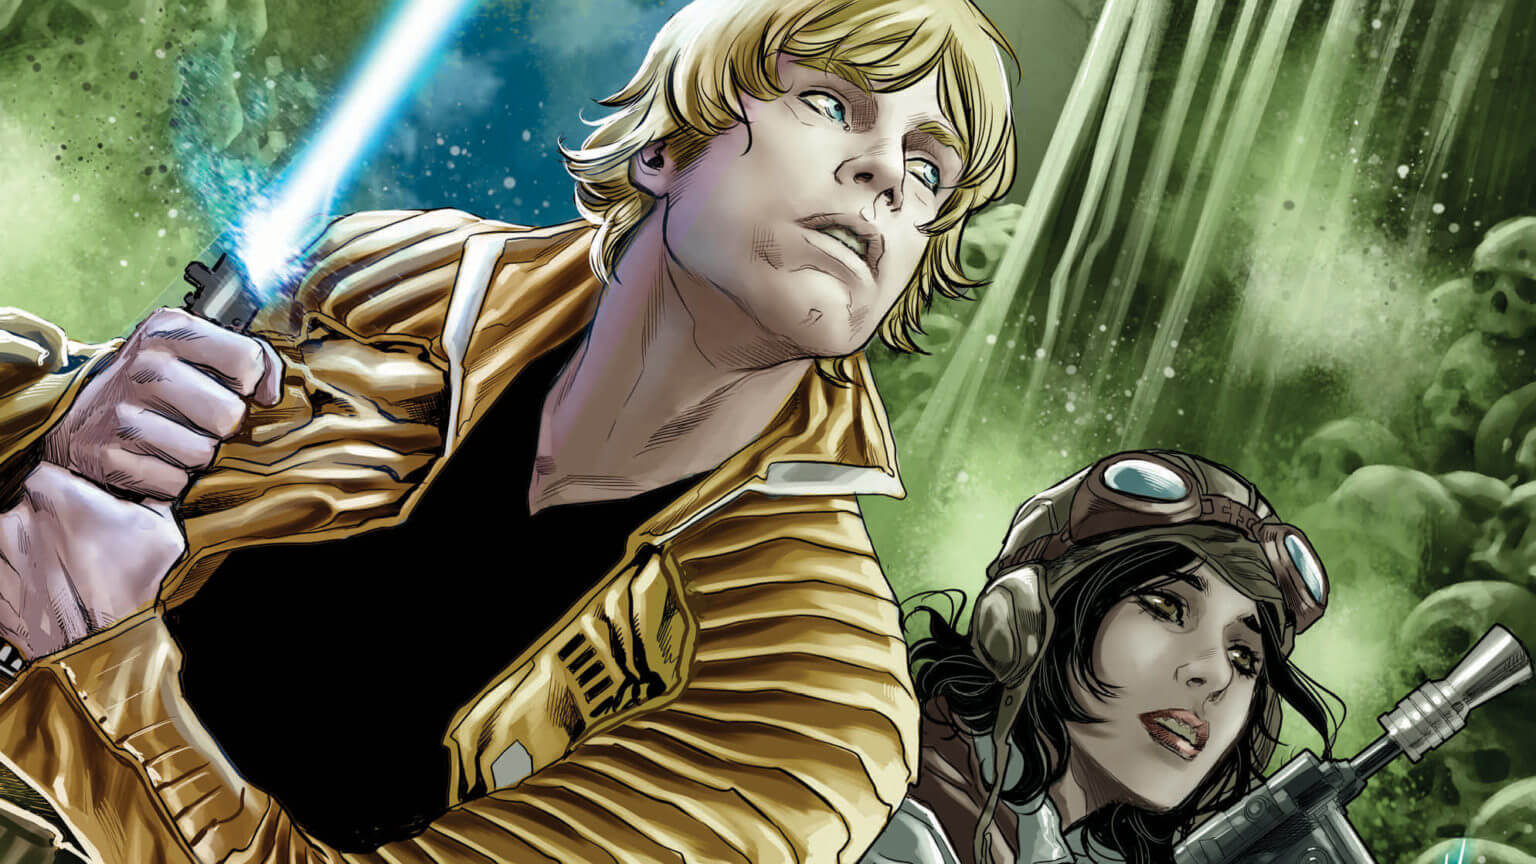 star wars screaming5.jph 1 - Star Wars: The Screaming Citadel Horror Comic Coming This Year